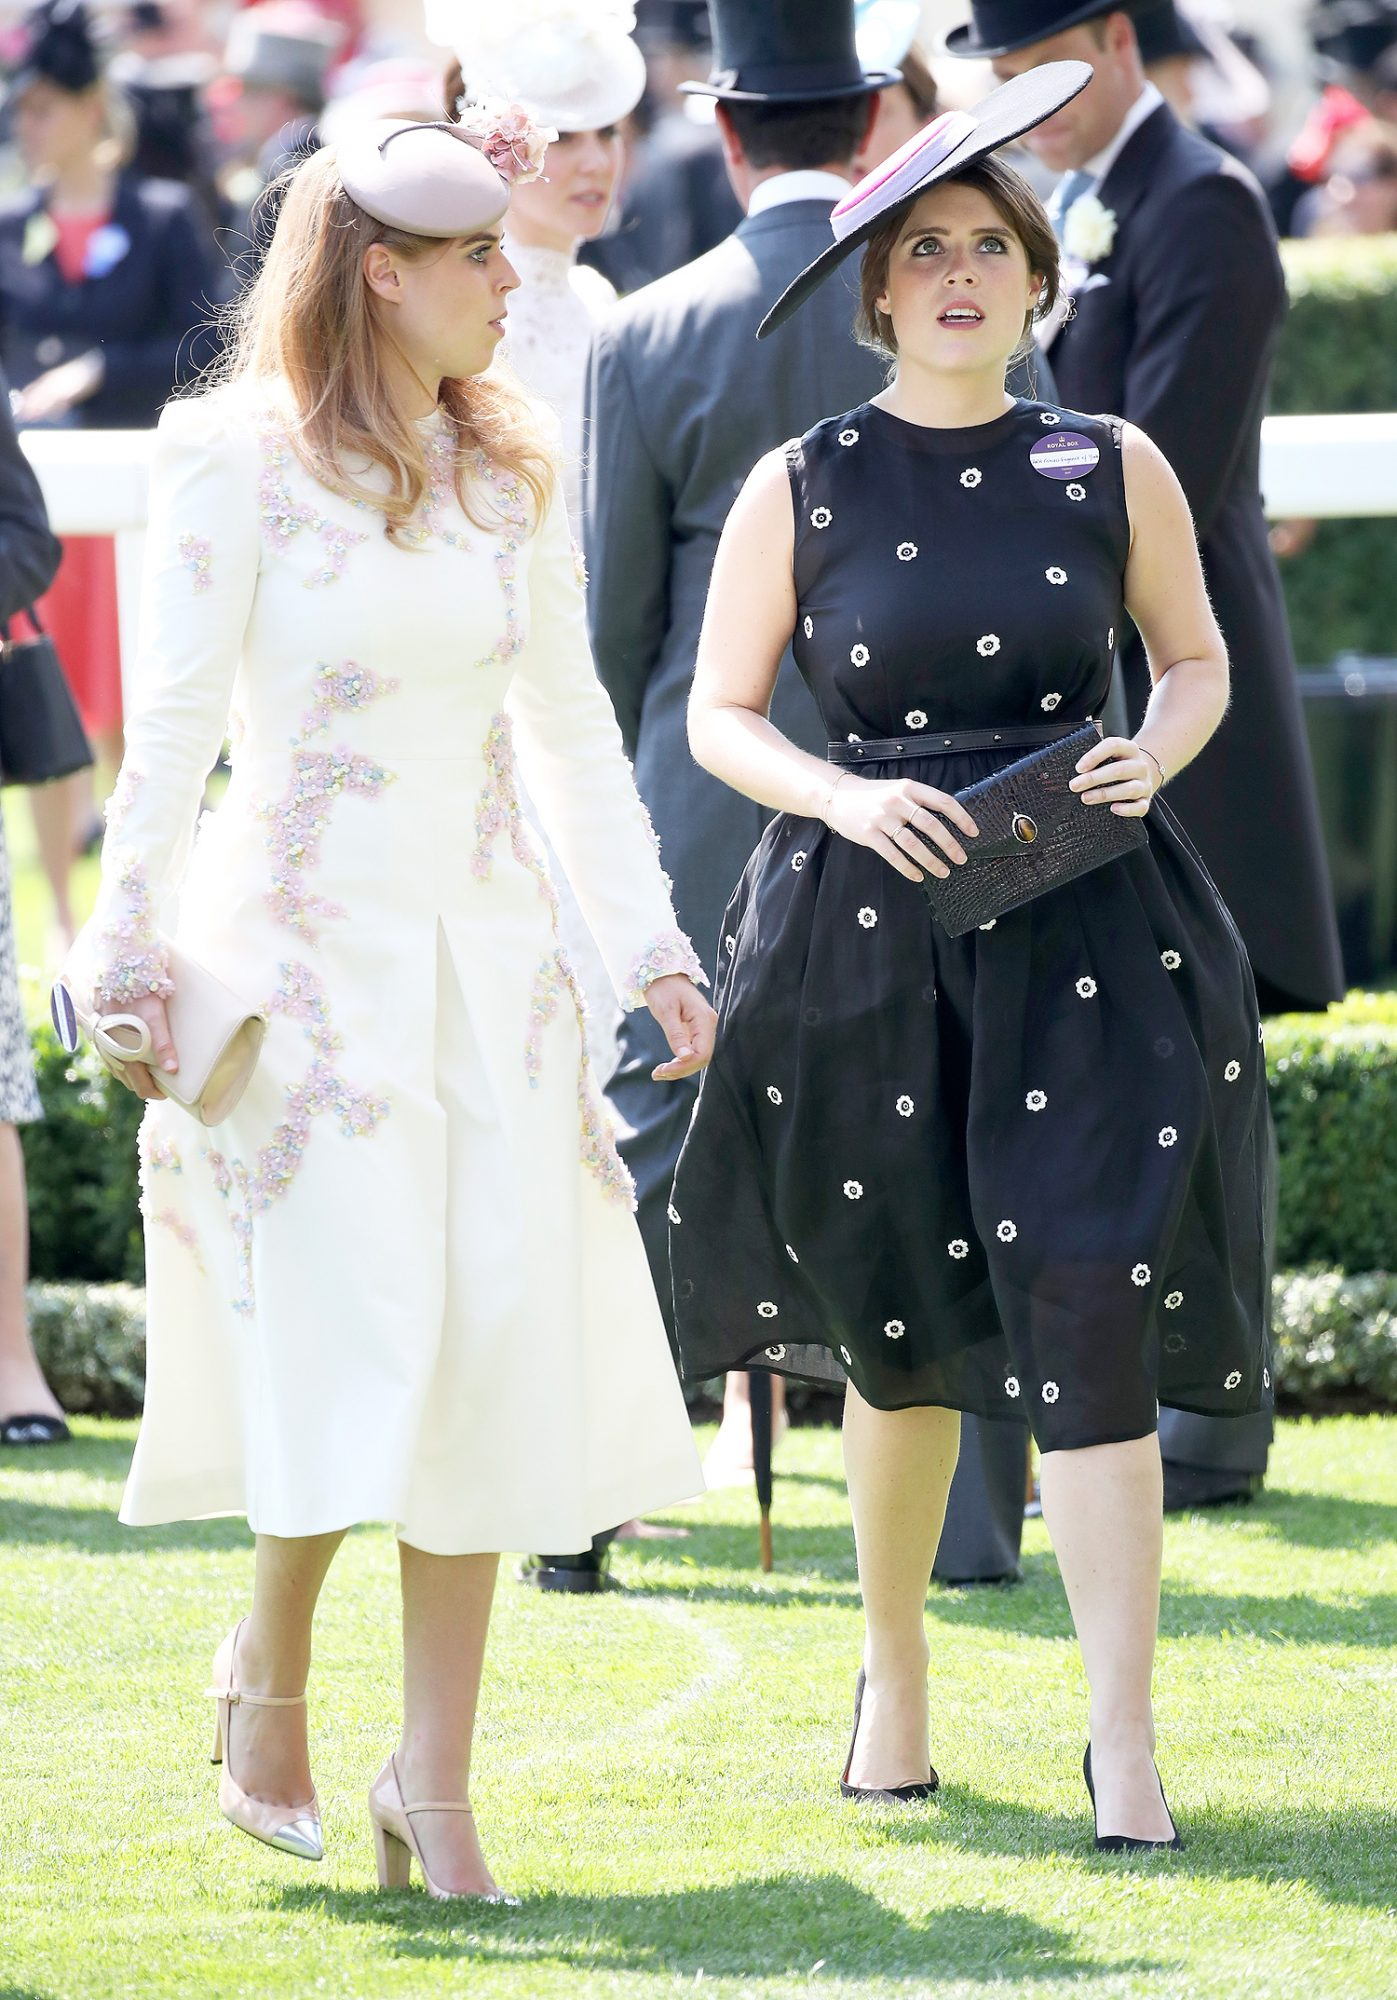 Royal Ascot 2017 - Day 1